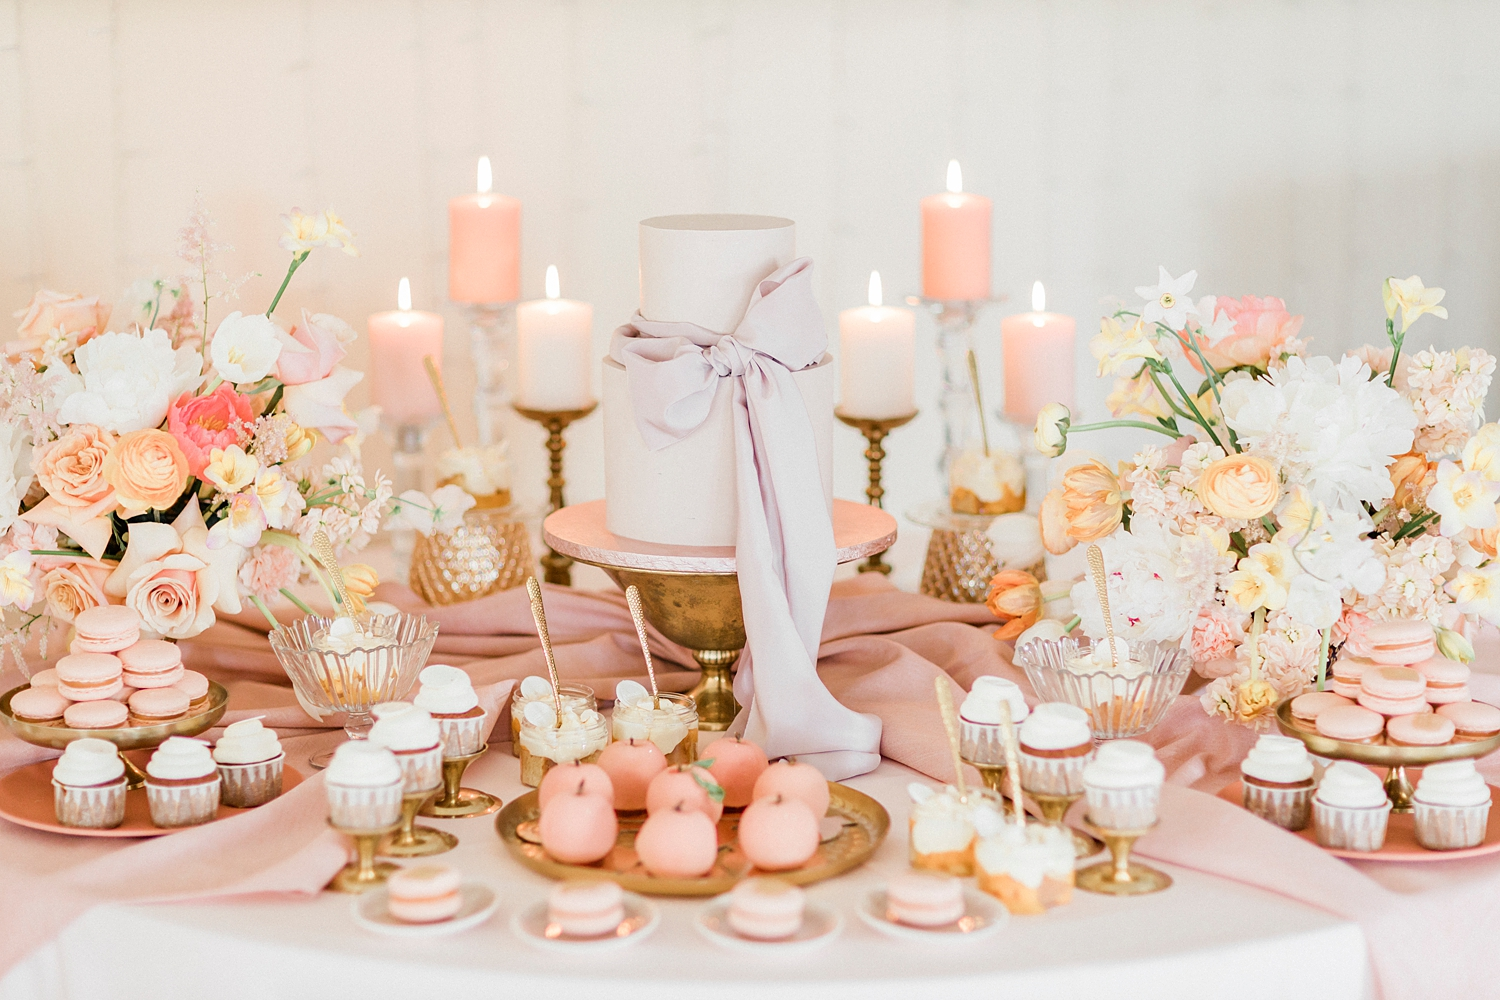 Dessert table in pink and white - photo by Jurgita Lukos Photography